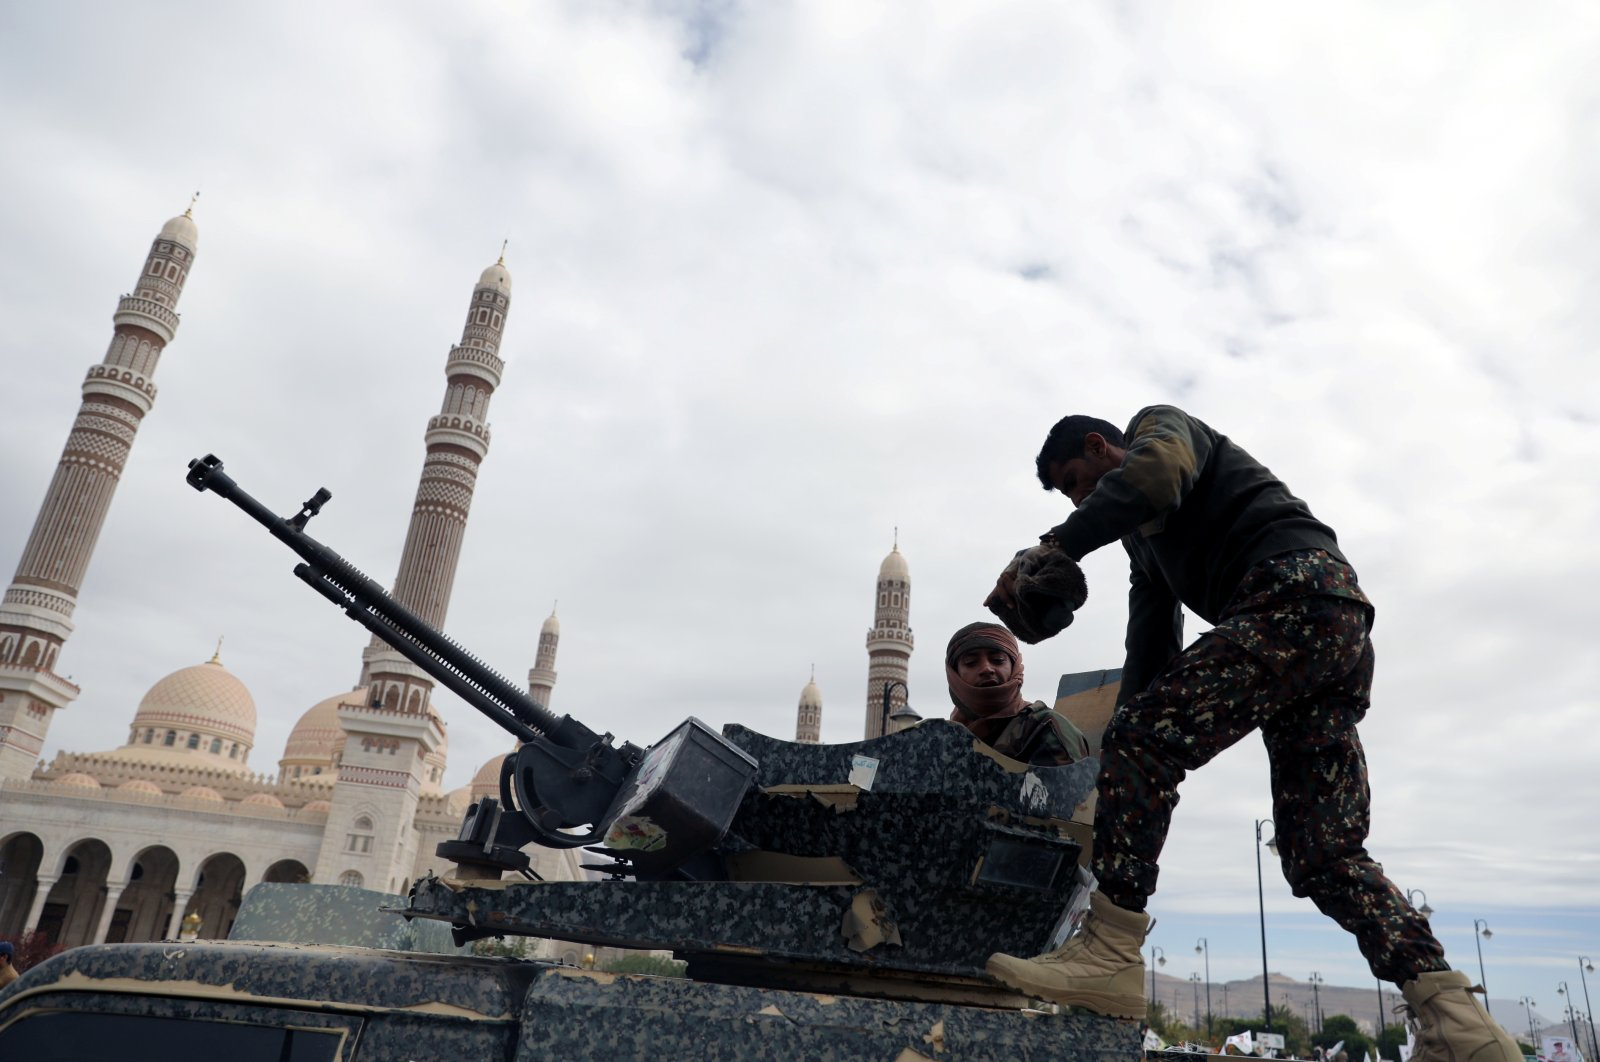 Soldiers secure the site of the funeral of Houthi fighters killed in recent fighting against forces of the internationally-recognized government, in Sanaa, Yemen, Nov. 25, 2020. (Reuters Photo)